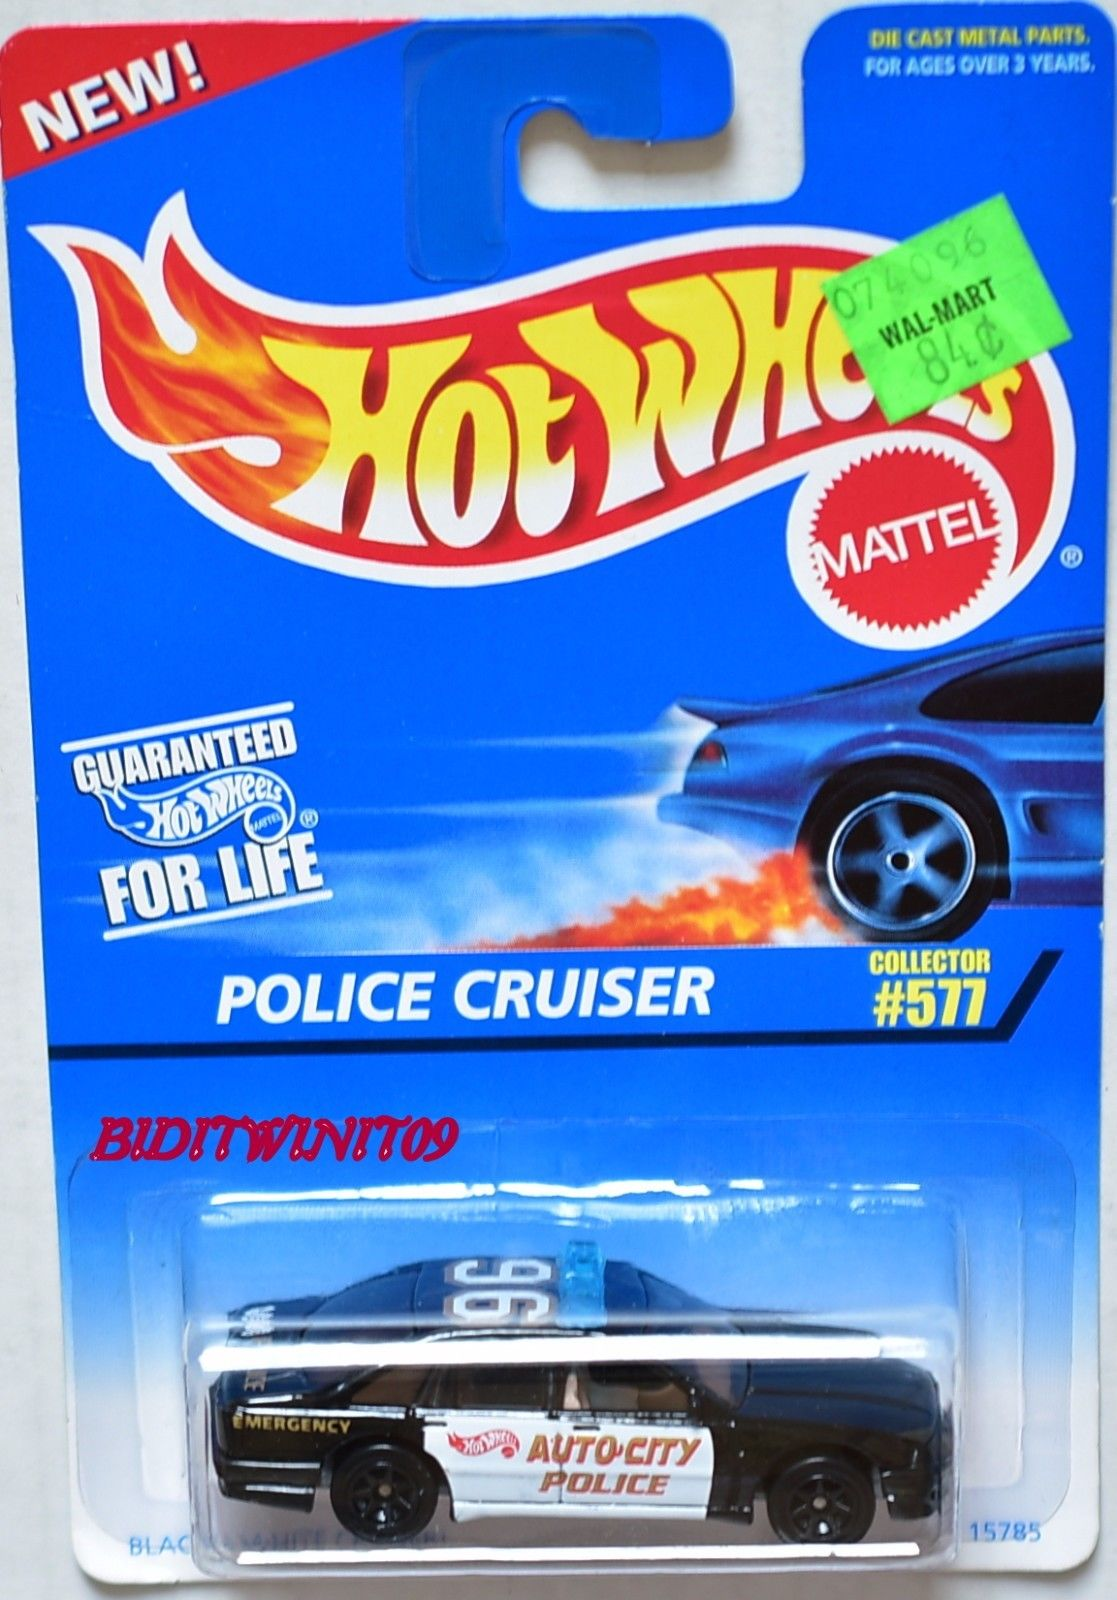 HOT WHEELS 1996 POLICE CRUISER #577